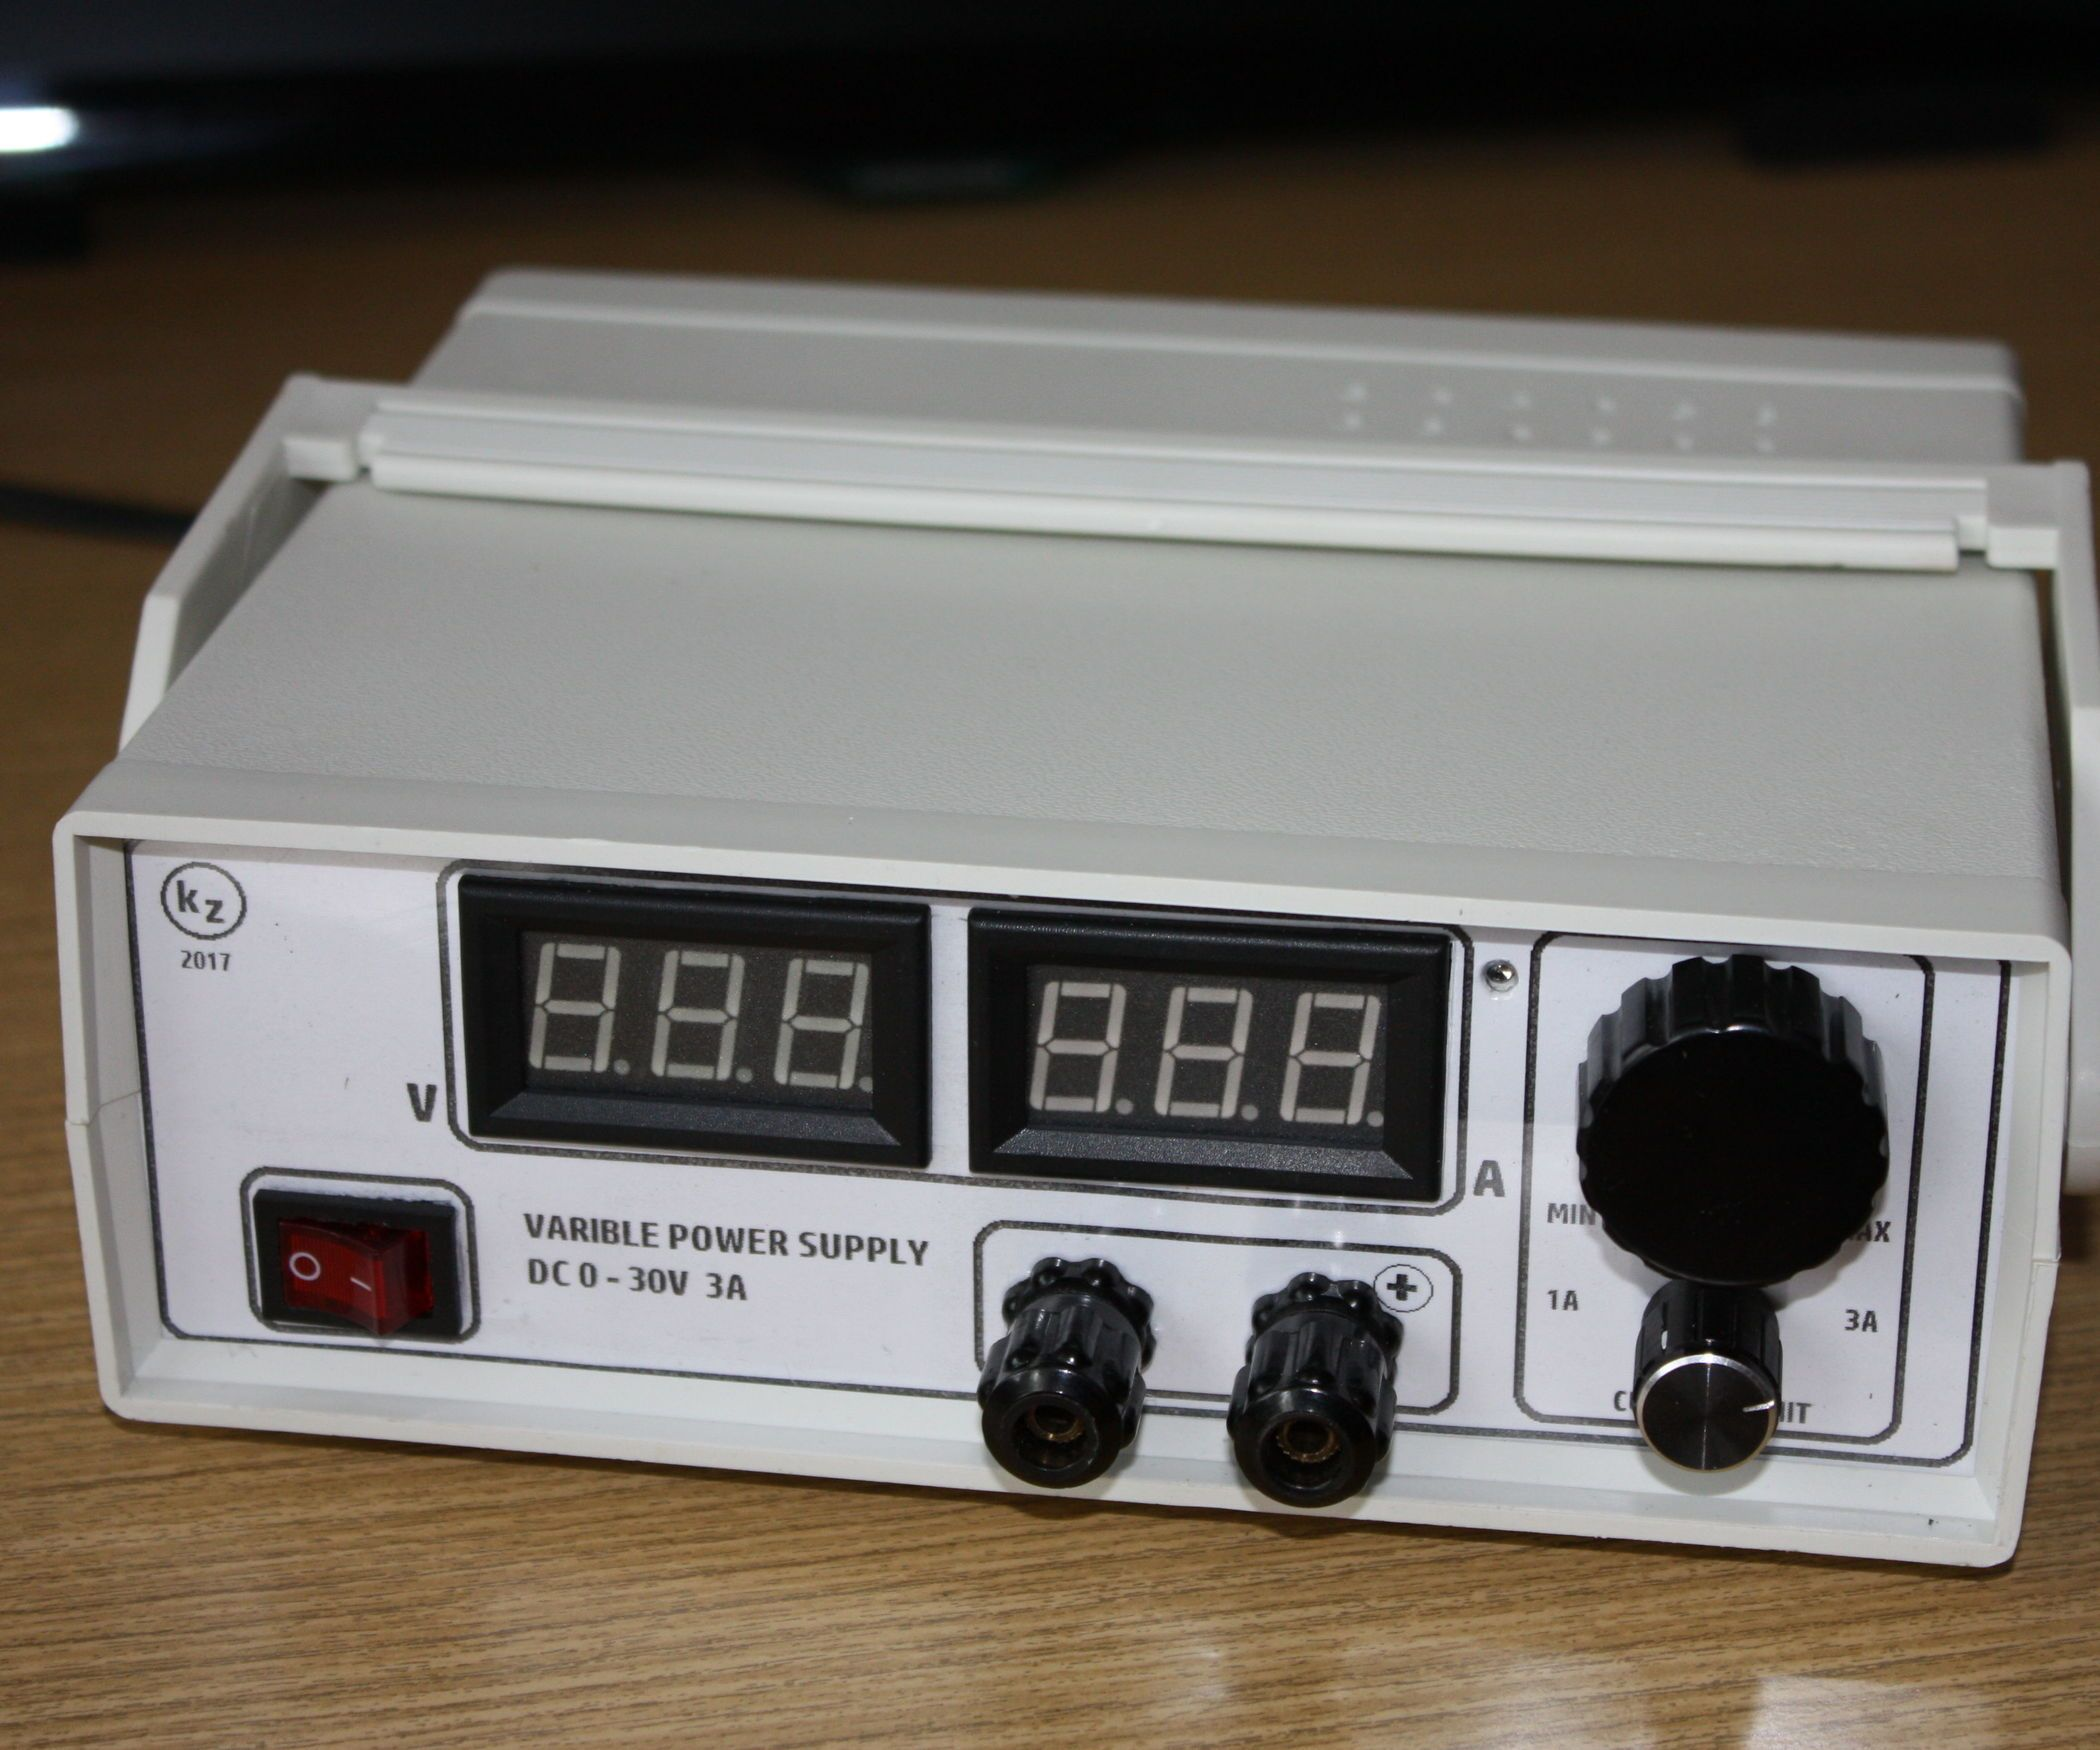 Small Variable Power Supply | Pinterest | Electronics projects and ...